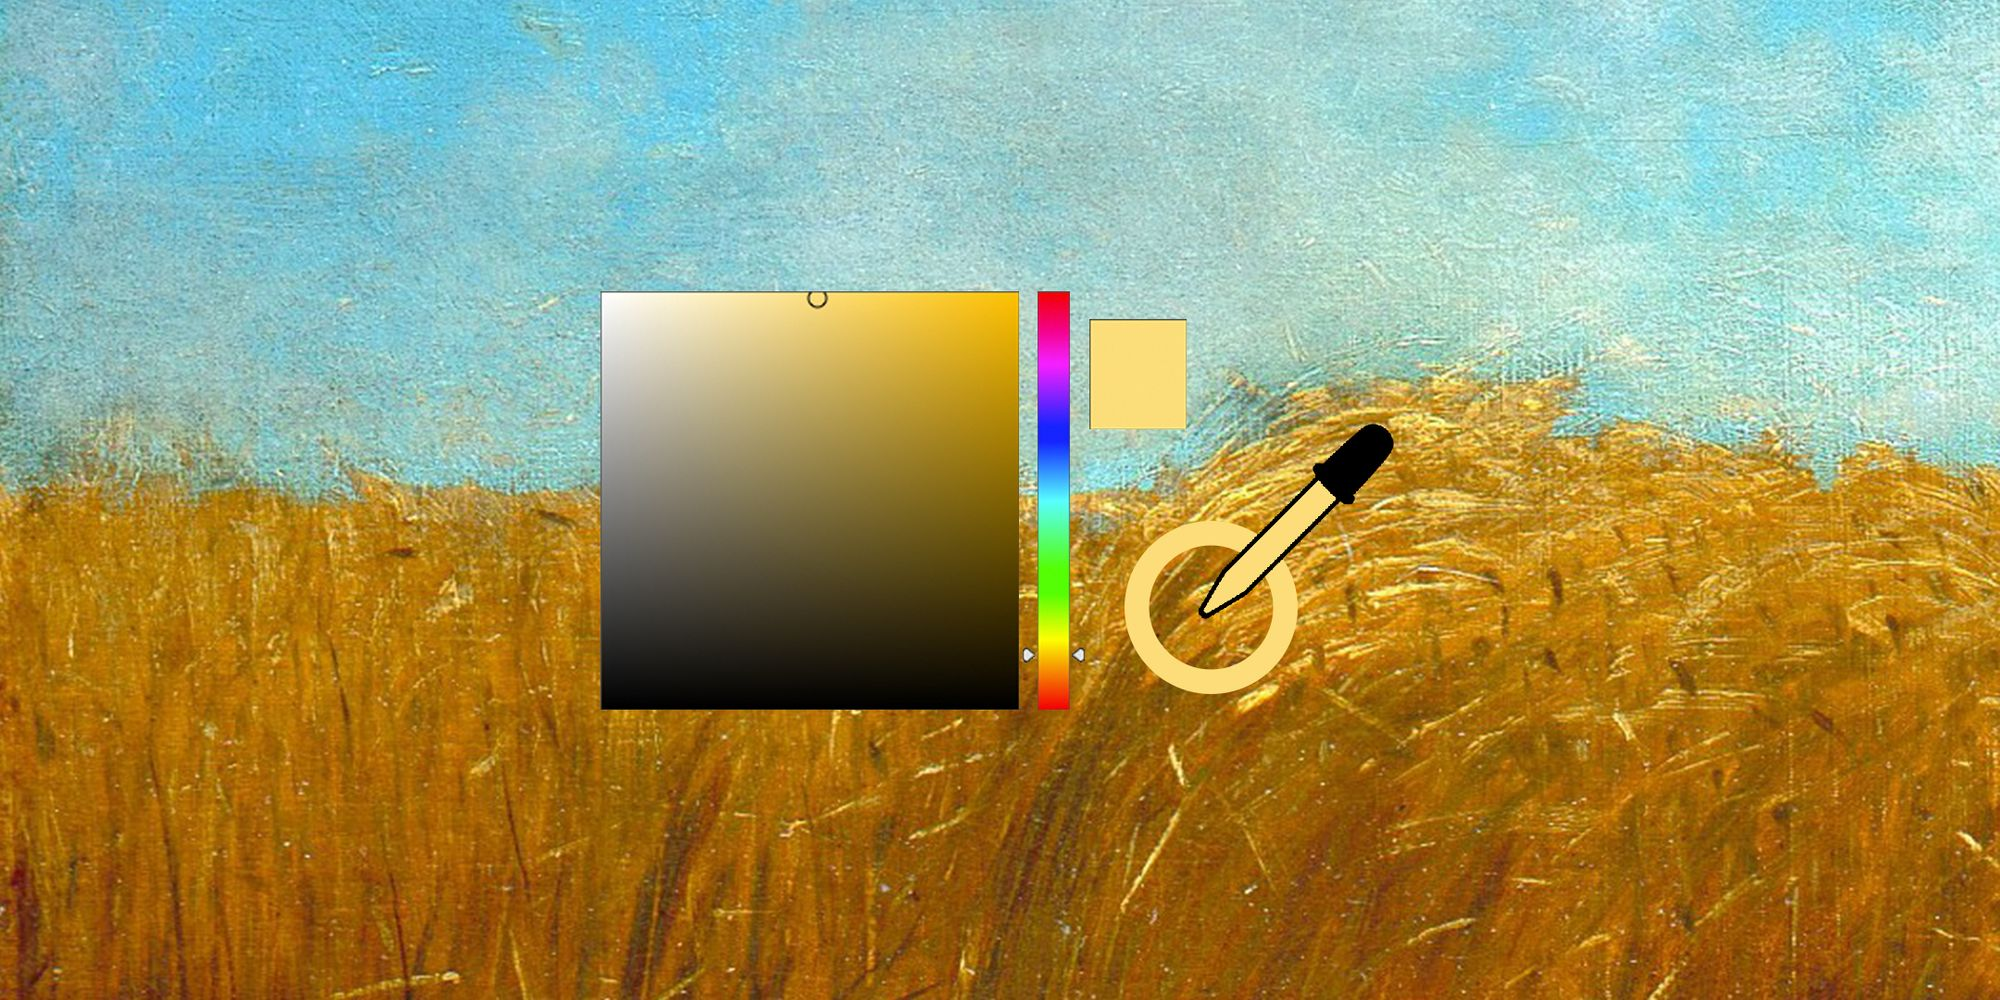 An eyedropper selecting a lovely shade of yellow from a painting of a field.